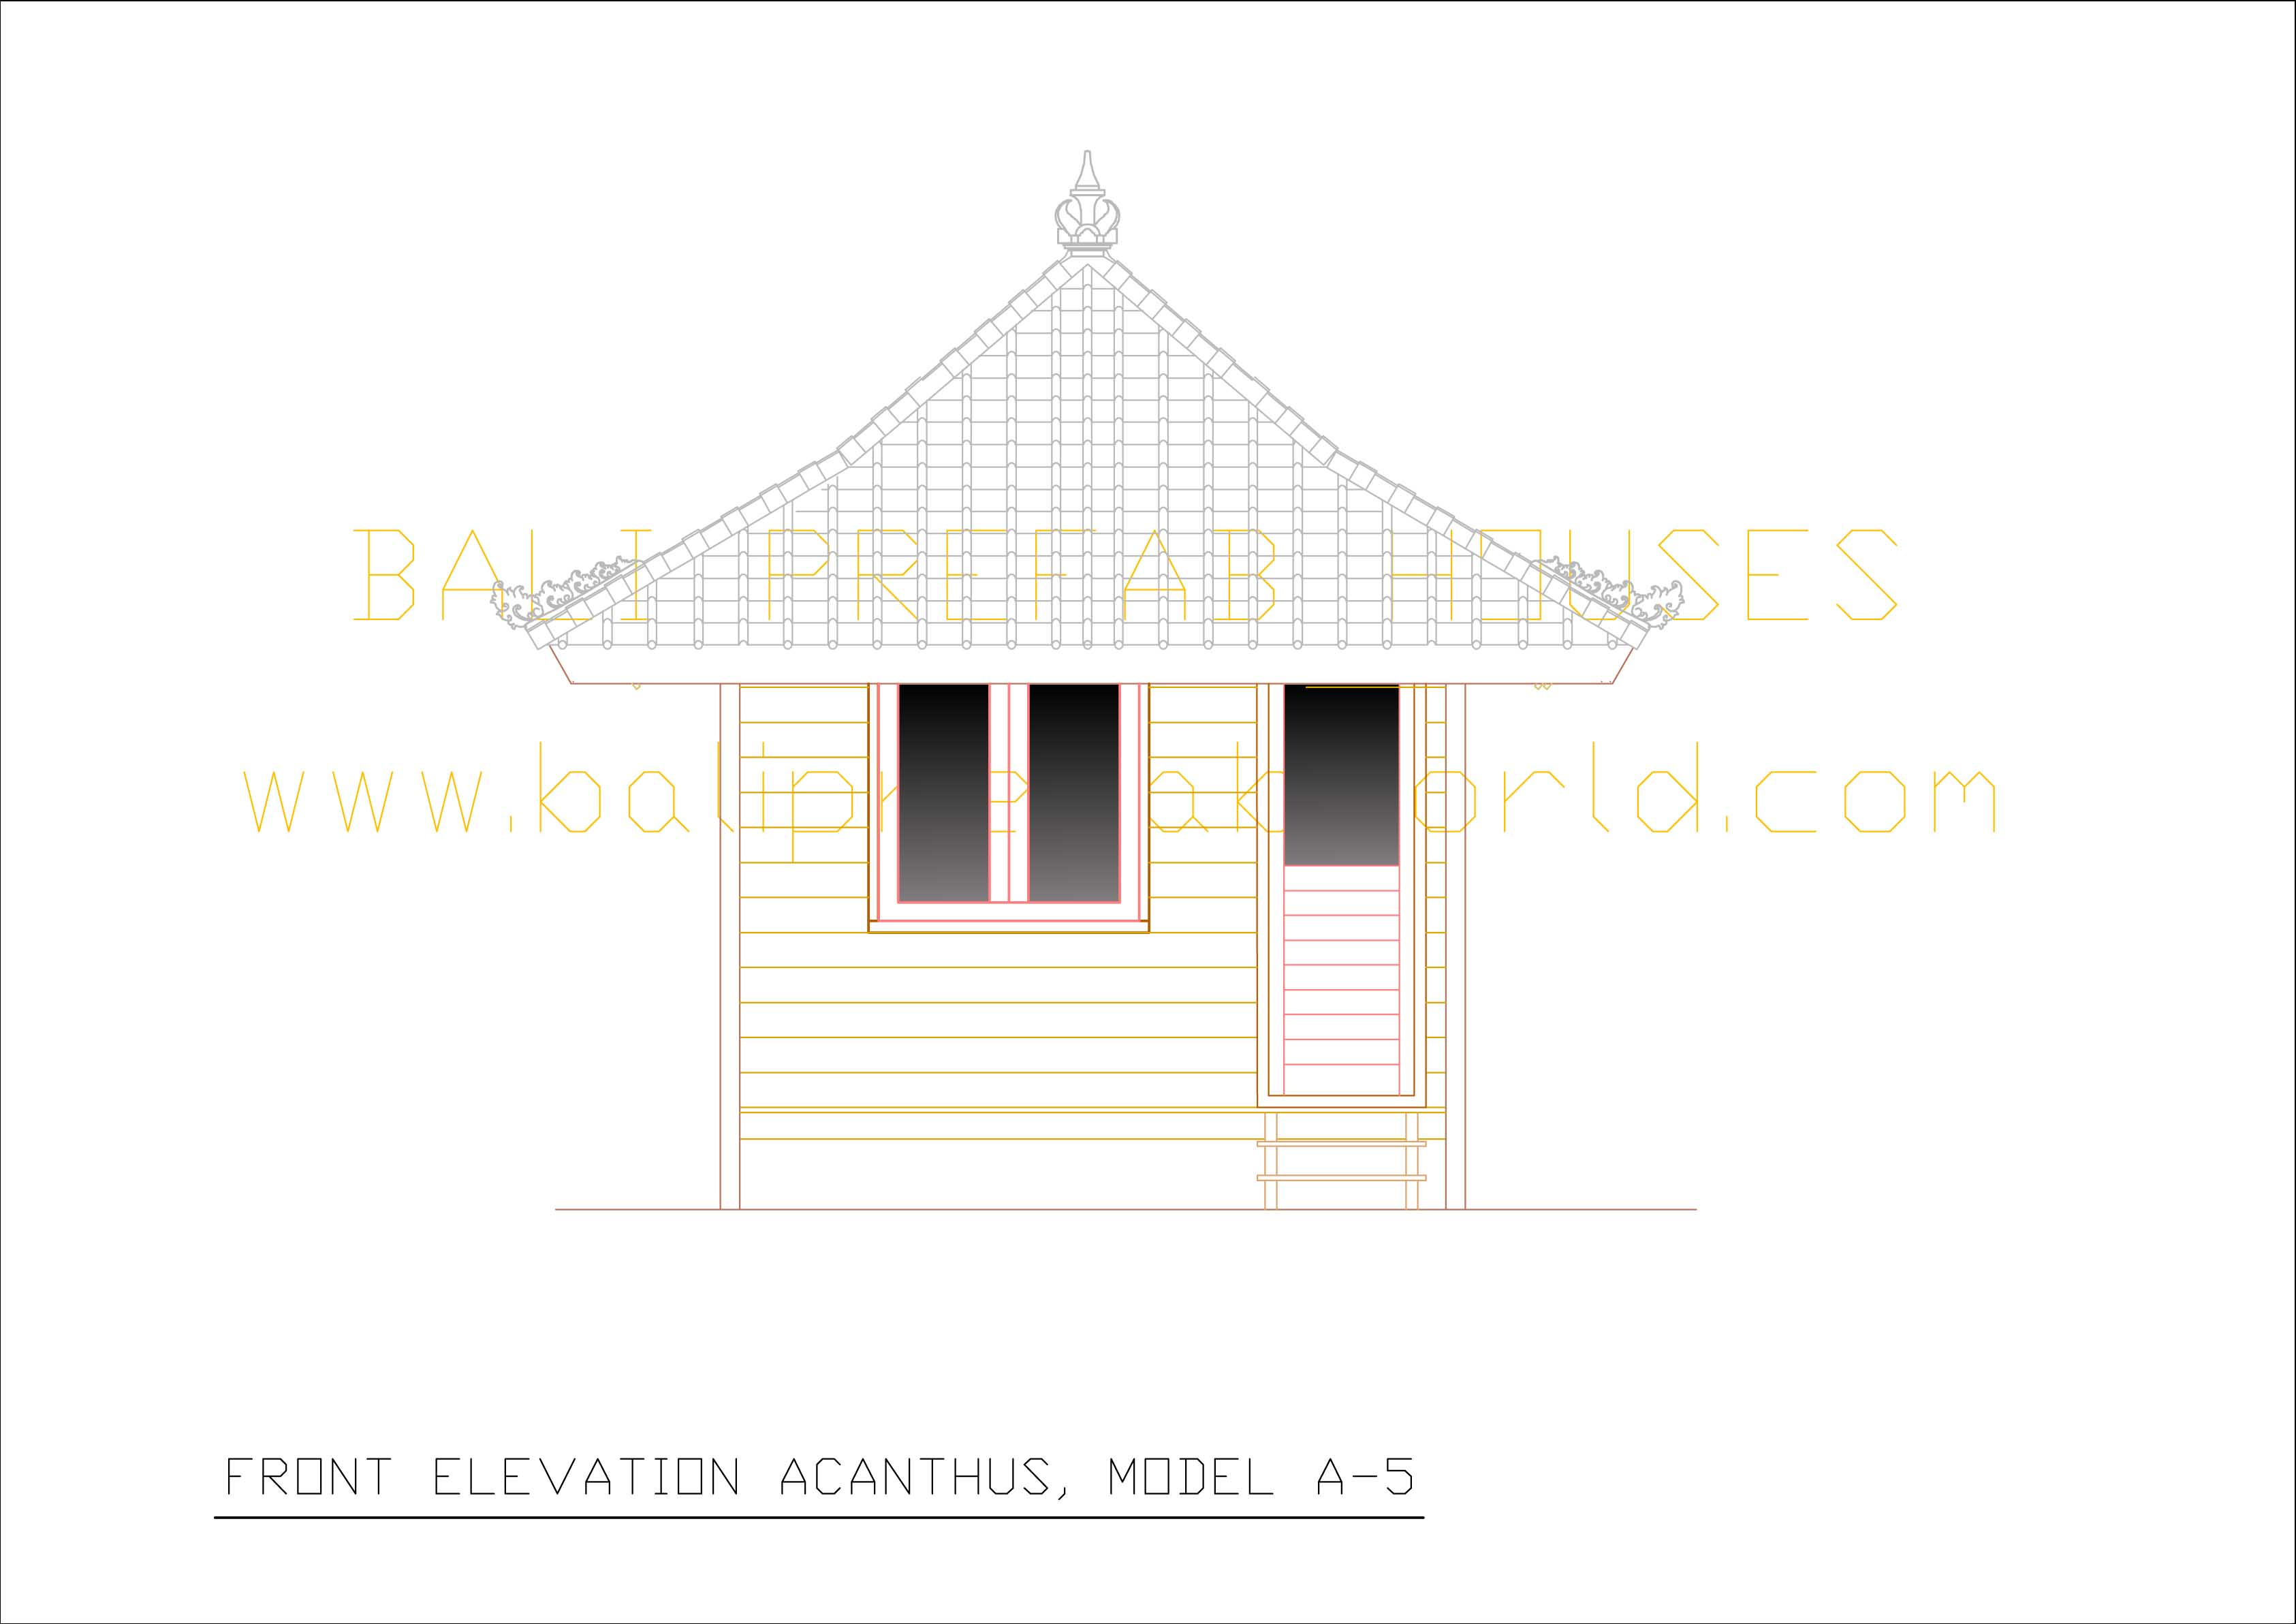 Acanthus1 front elevation